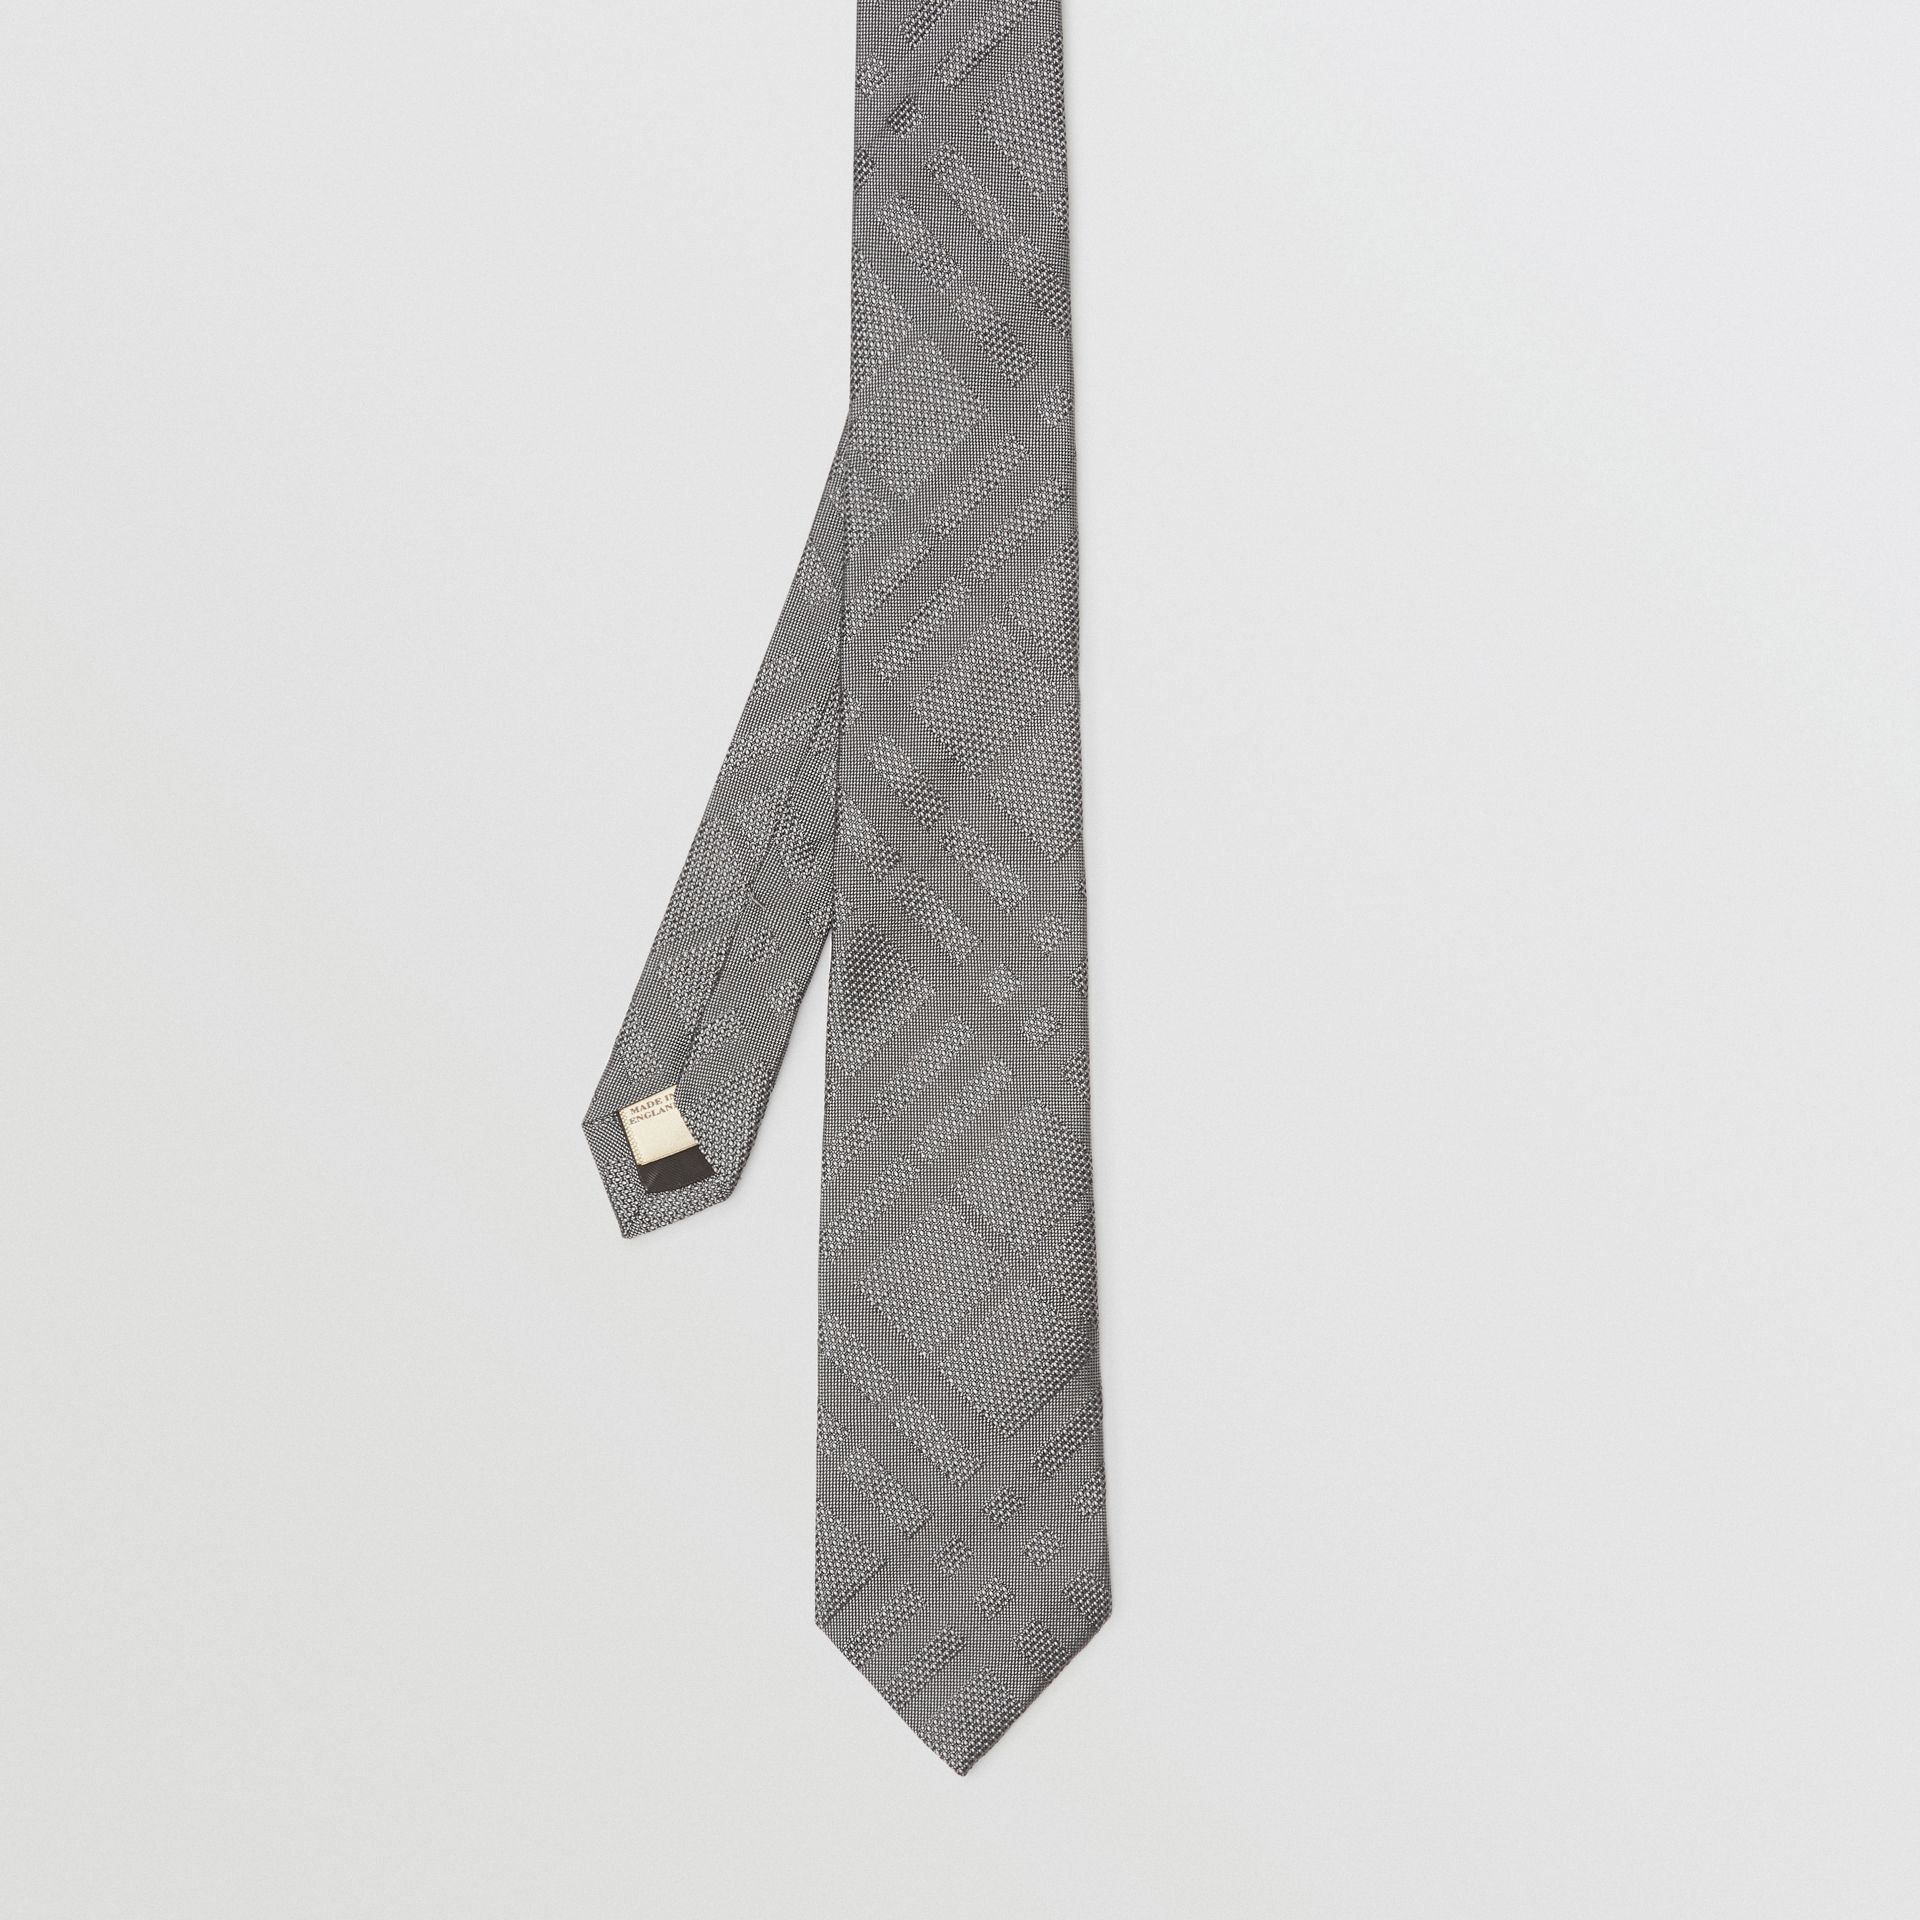 Classic Cut Check Silk Jacquard Tie in Charcoal - Men | Burberry - gallery image 4